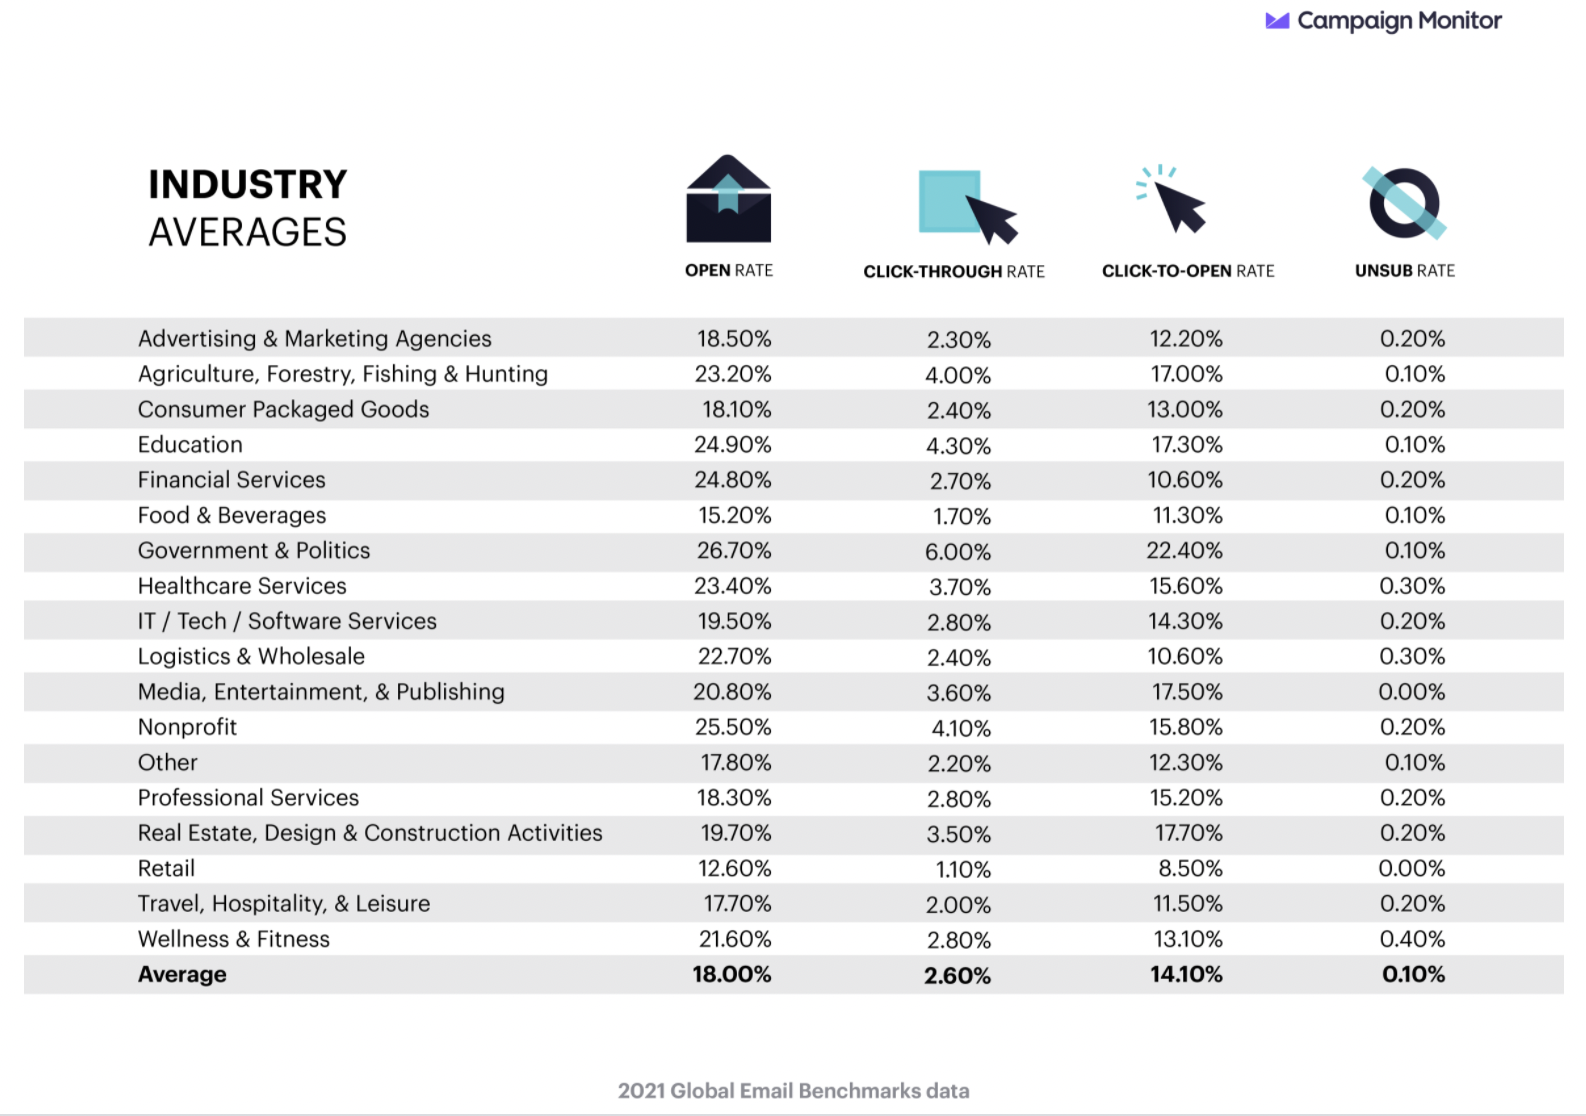 Average CTR by industry